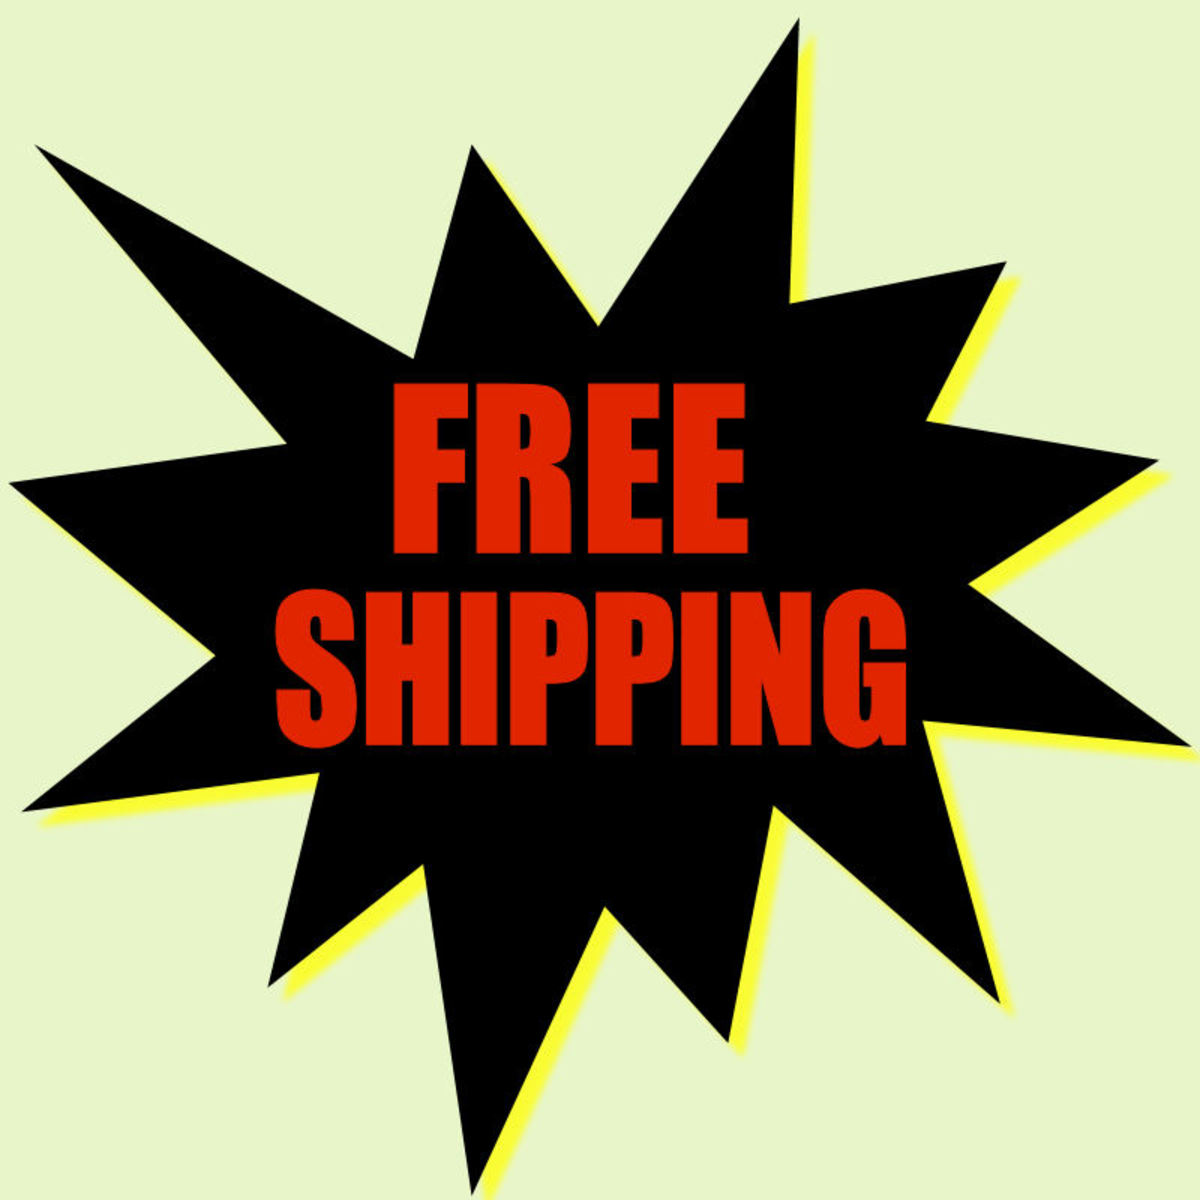 Offering Free Shipping on Ebay - Is it Worth It?